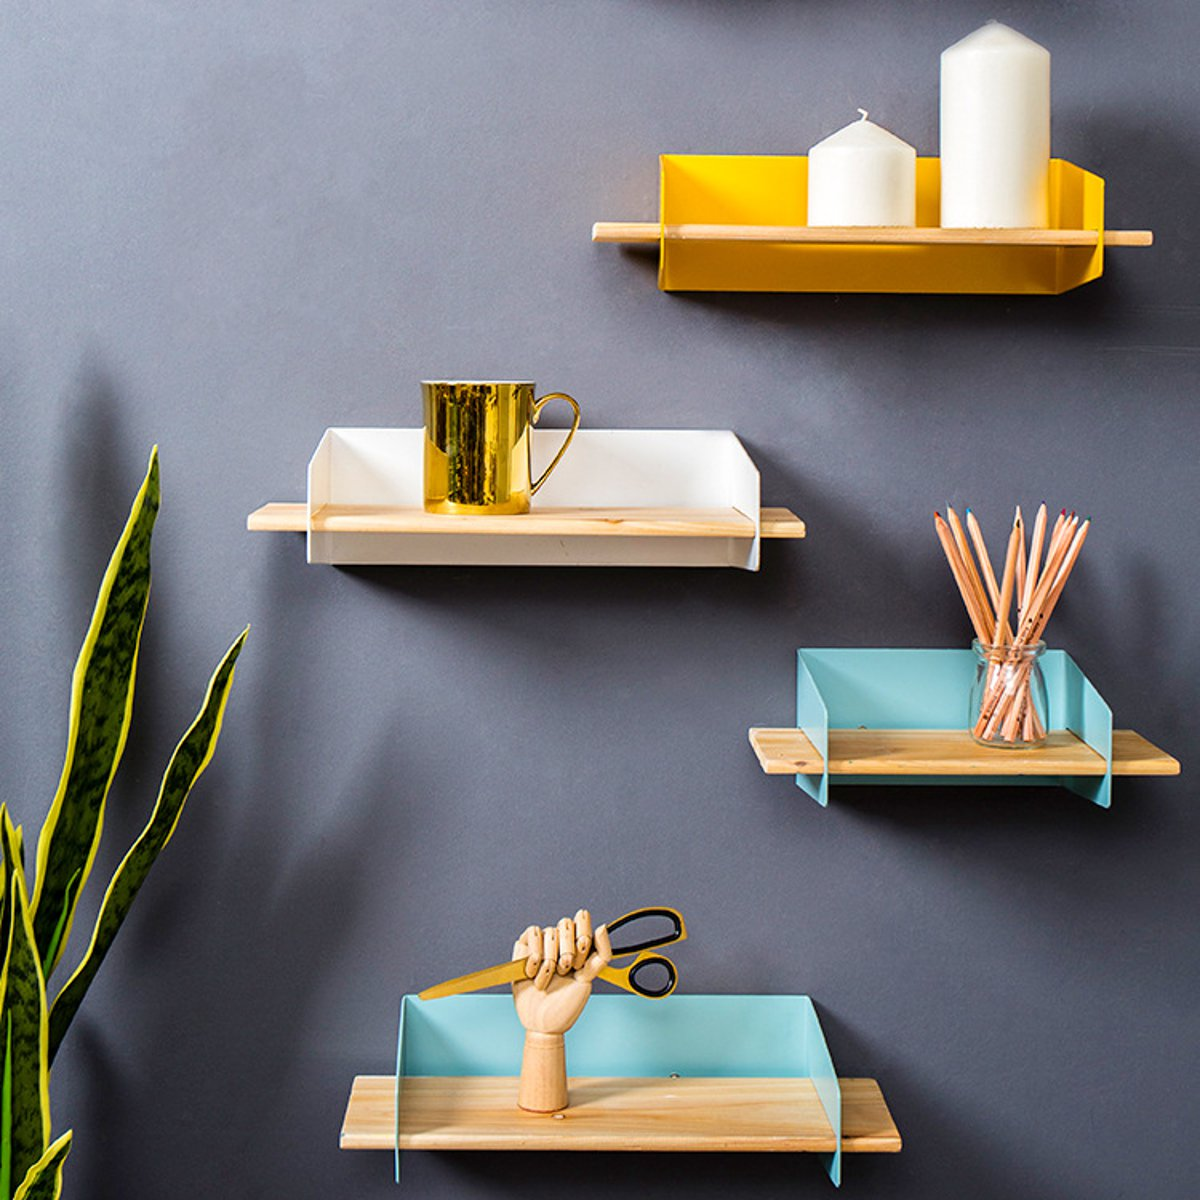 30X15X10cm Wooden Wall Shelf Wall Mounted Storage Rack Organization Bedroom Kitchen Home Decor Room DIY Wall Decoration Holder shelf